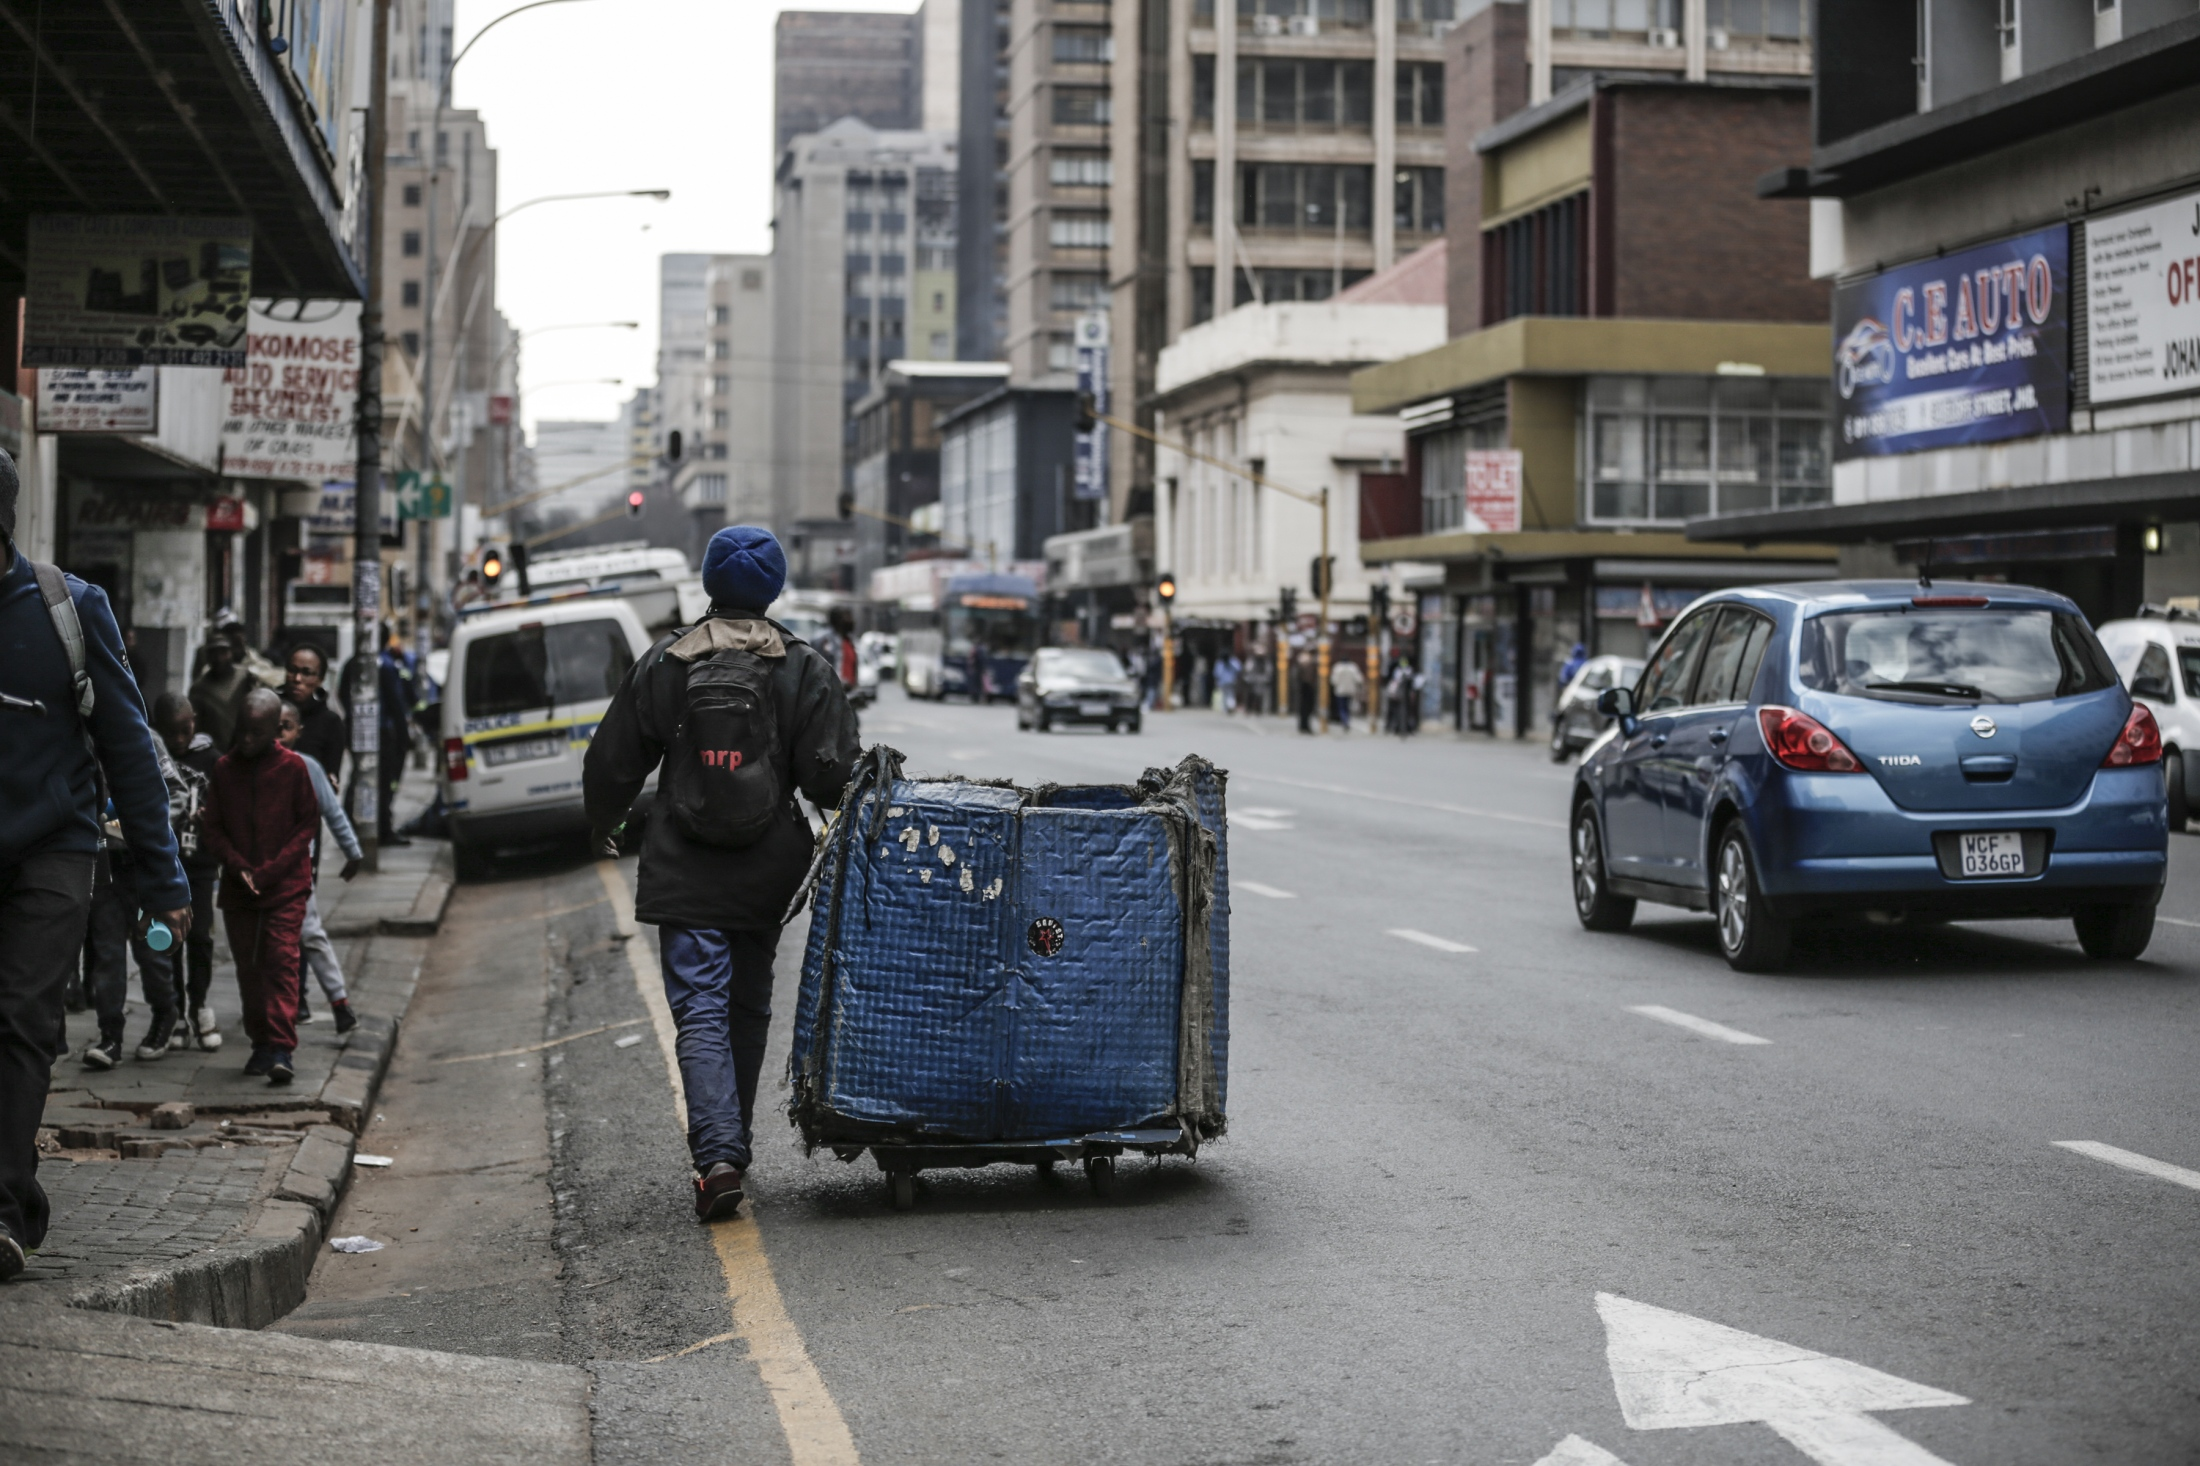 Oscar Maile, 29, pulls his trolley as he collects waste in Johannesburg city. Maile has been doing this for three years and says there are often fights on the streets with other reclaimers. He sometimes does two or three rounds collecting waste to earn enough for the day.  Each round paying him R30 - R40 which is the equivalent of approximately $2.